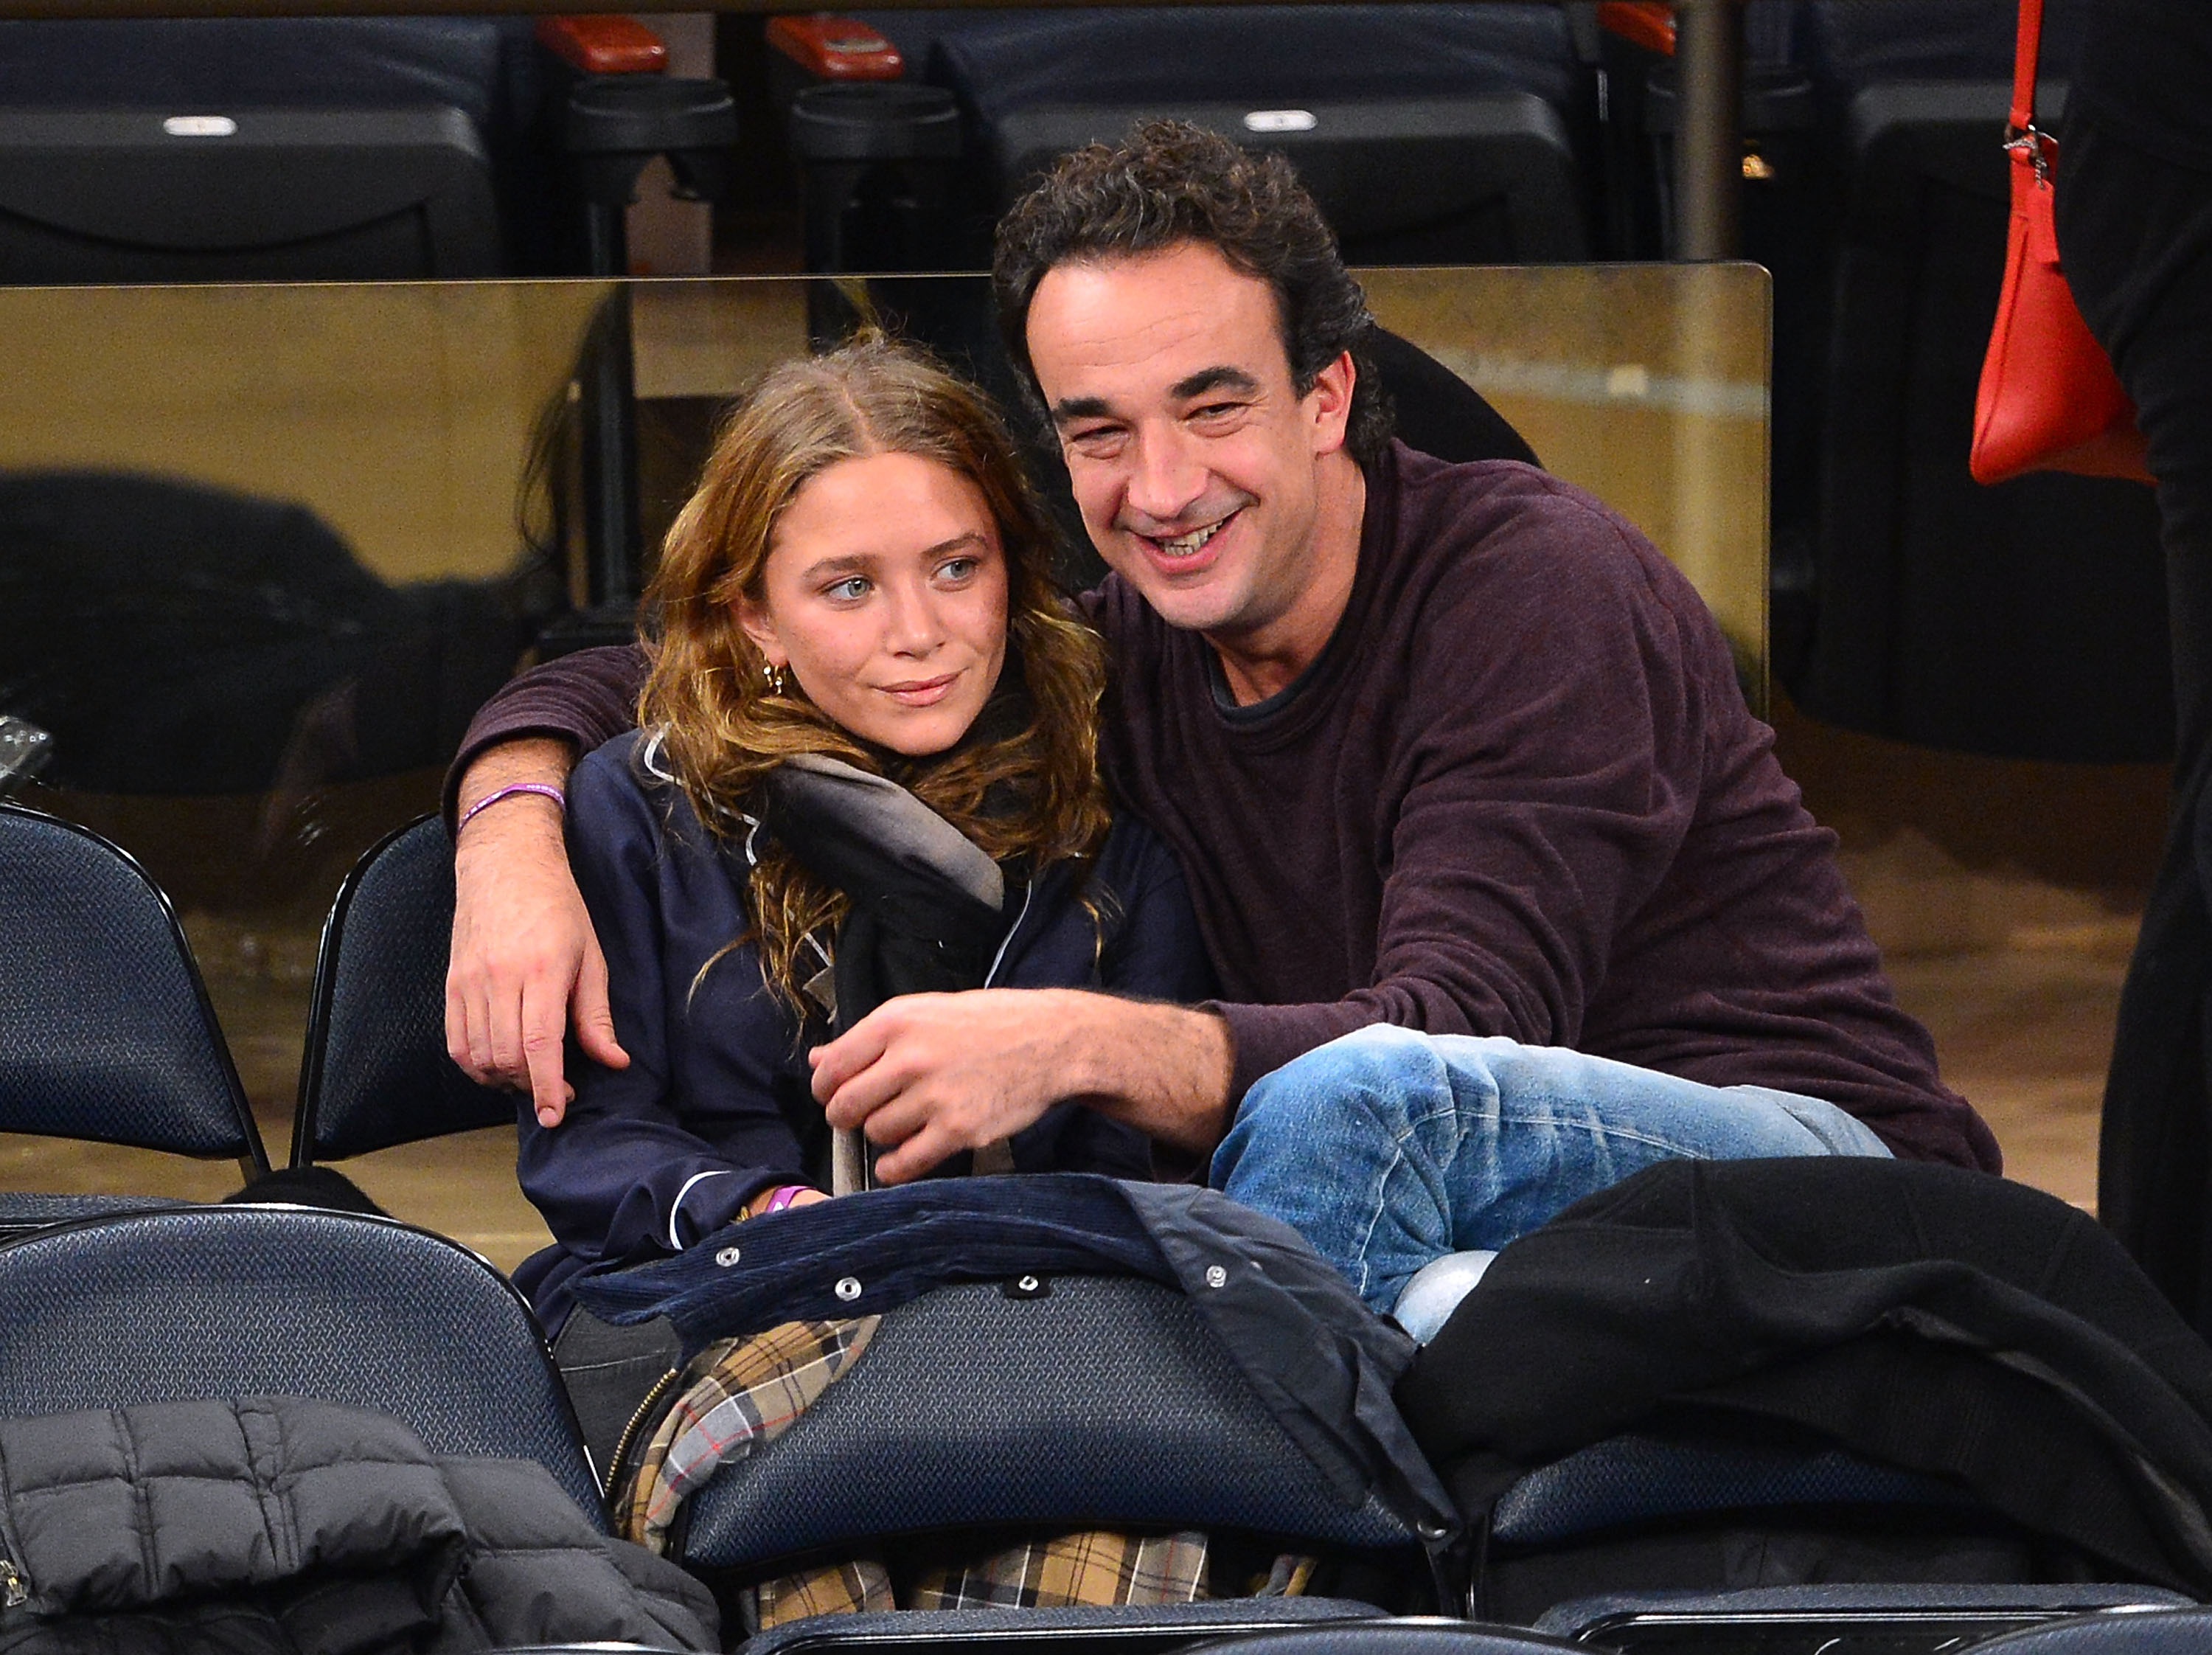 NEW YORK, NY - NOVEMBER 09: Mary-Kate Olsen and Olivier Sarkozy attend the Dallas Mavericks vs New York Knicks game at Madison Square Garden on November 9, 2012 in New York City. (Photo by James Devaney/WireImage)